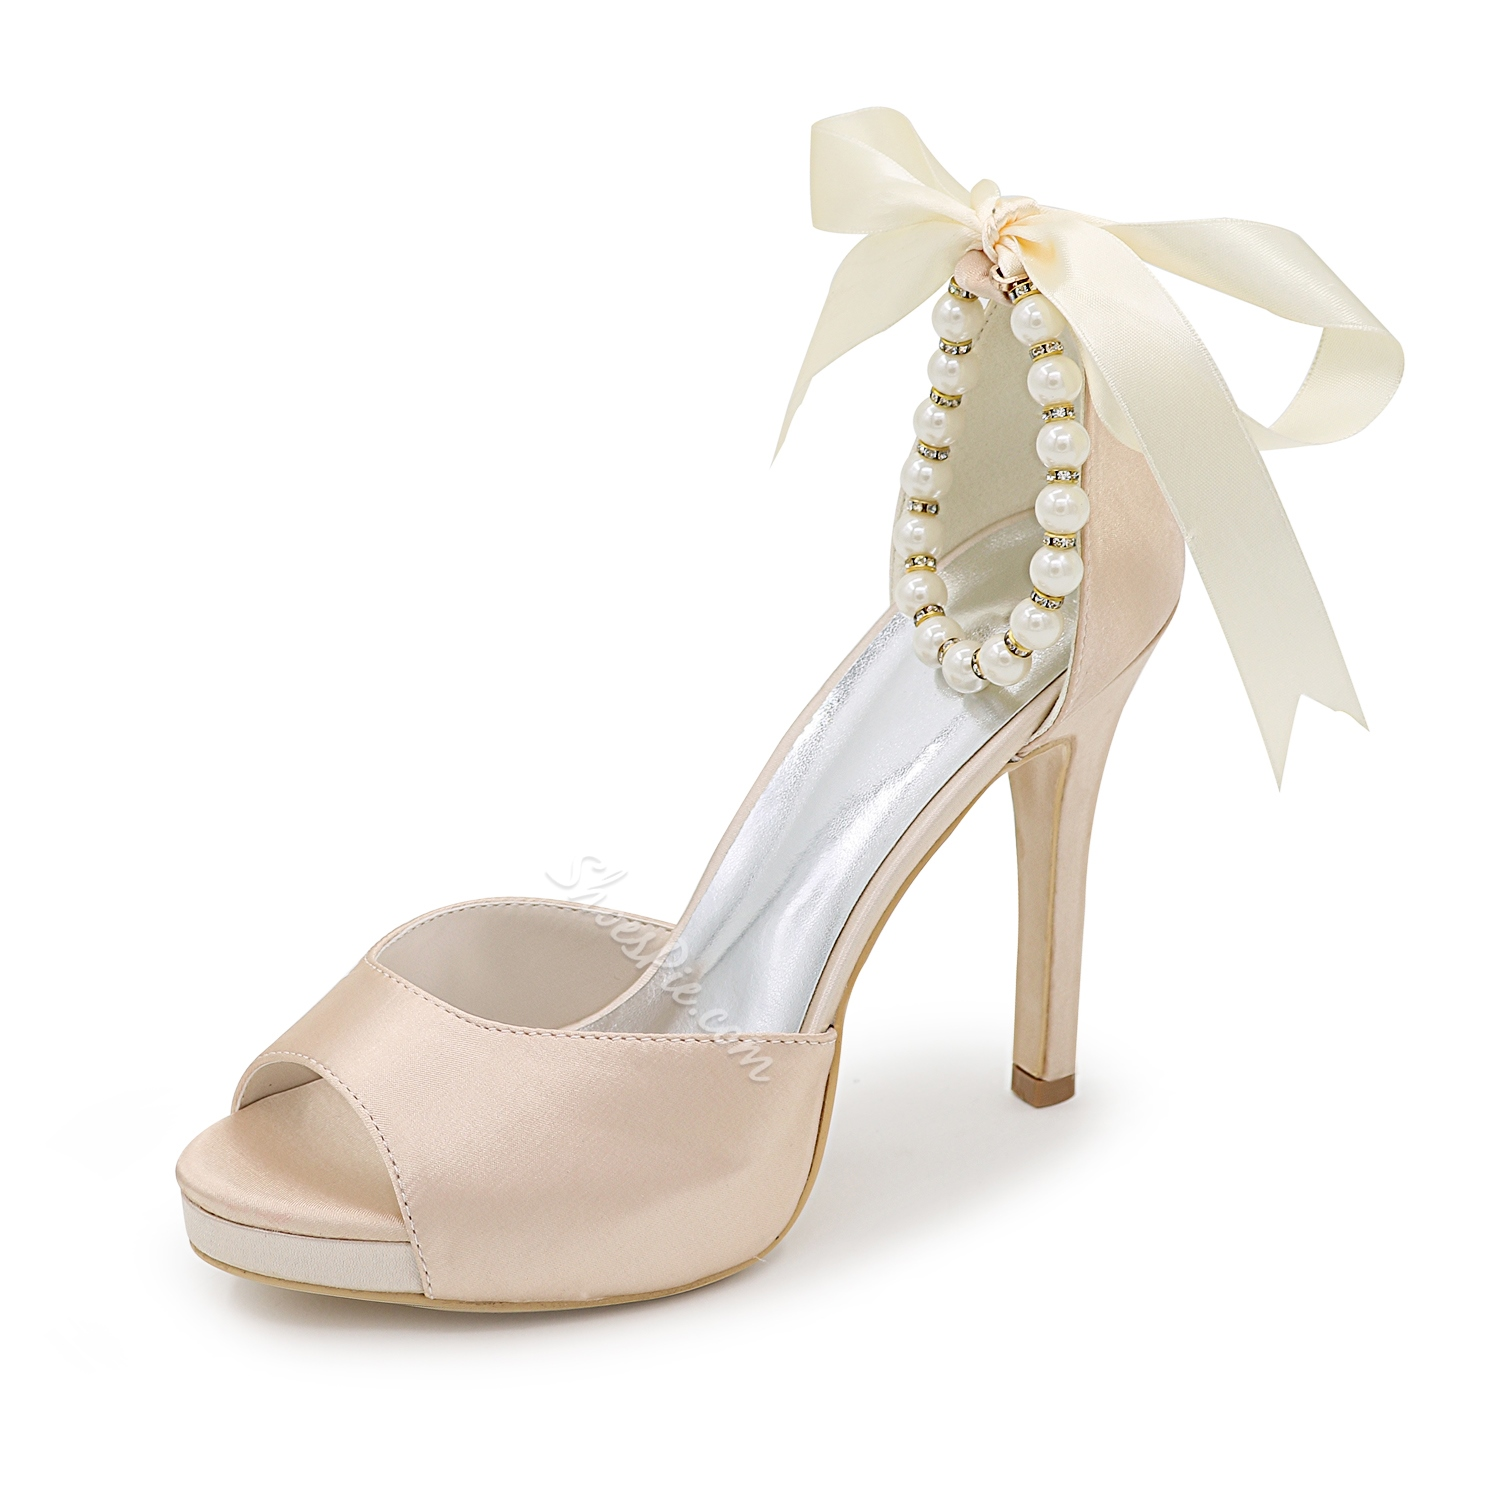 Shoespie Solid Color Ankle Beaded Bridal Shoes